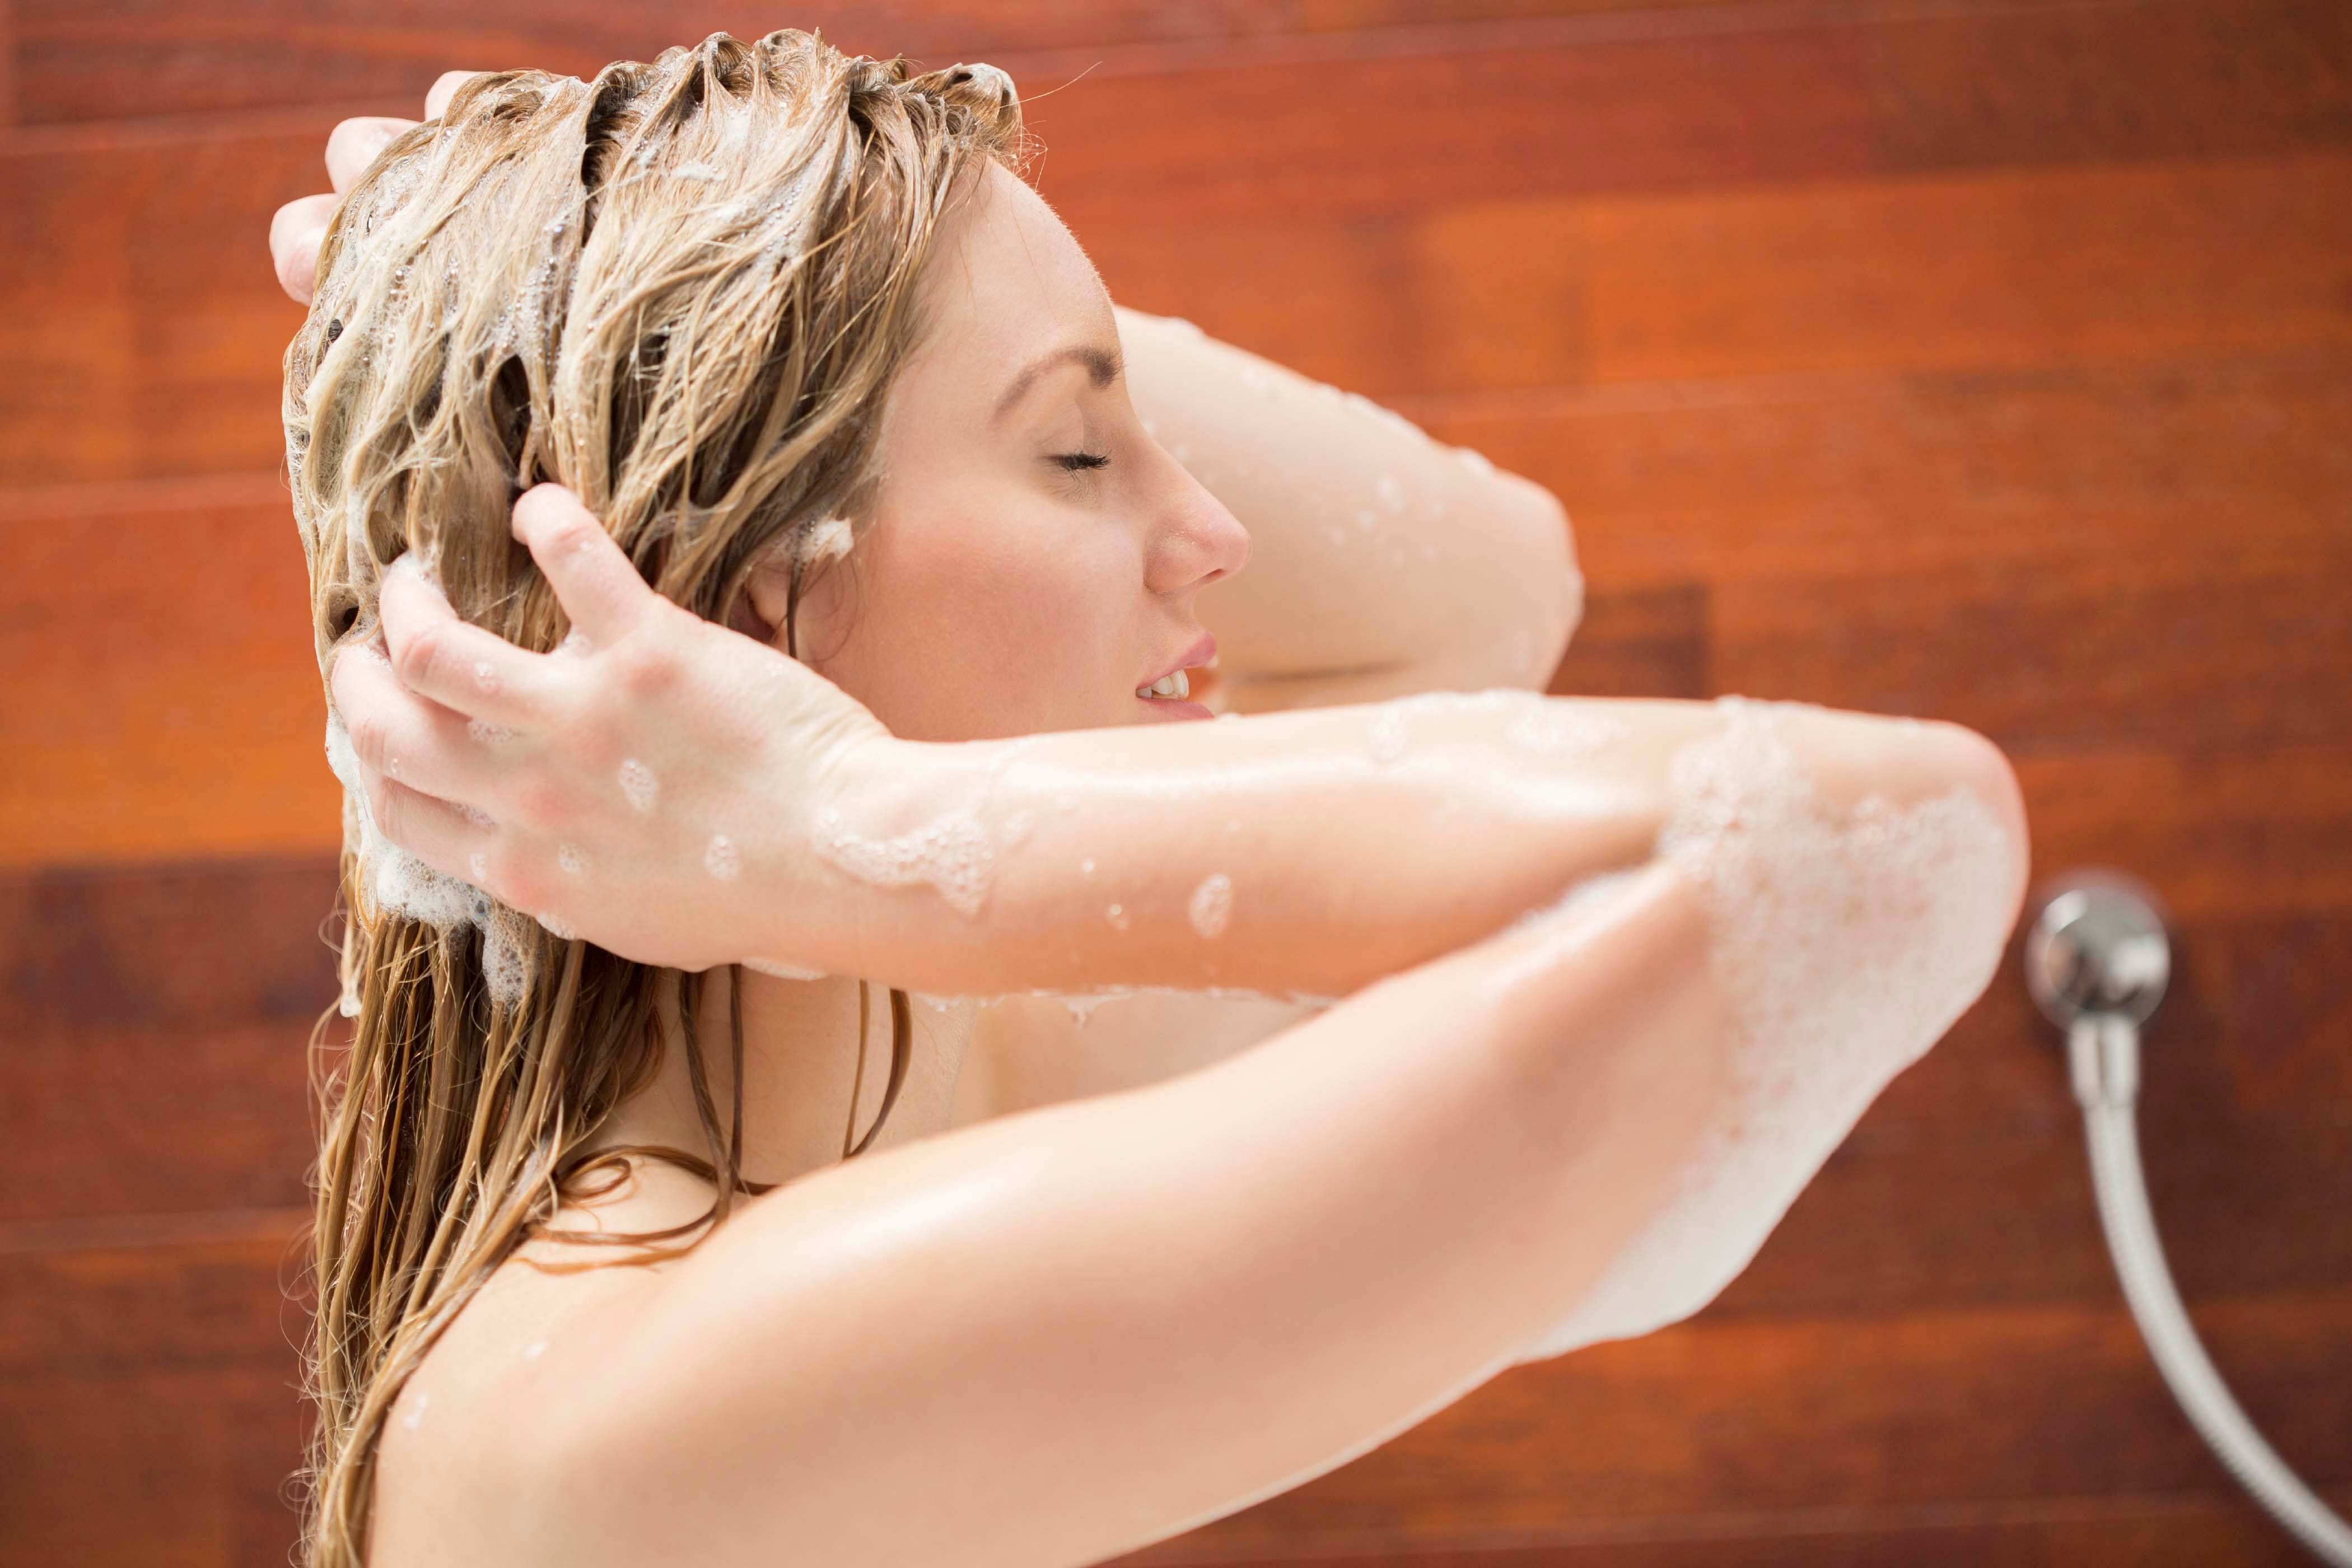 blonde woman washing her hair